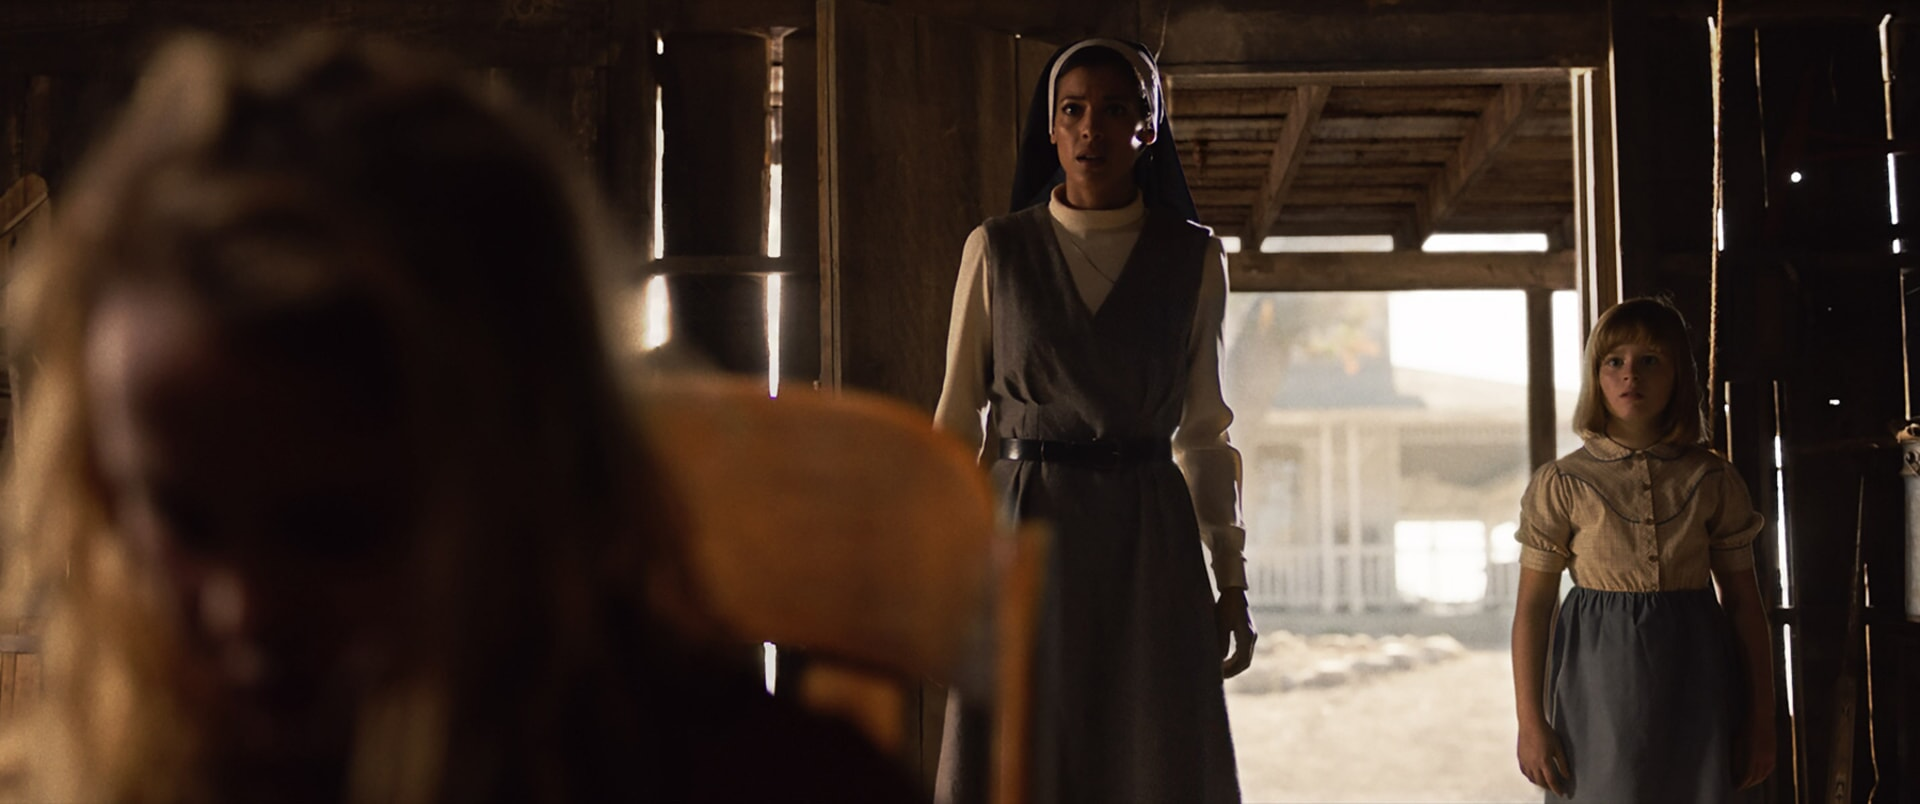 """STEPHANIE SIGMAN as Sister Charlotte and LULU WILSON as Linda in New Line Cinema's supernatural thriller """"ANNABELLE: CREATION,"""" a Warner Bros. Pictures release."""